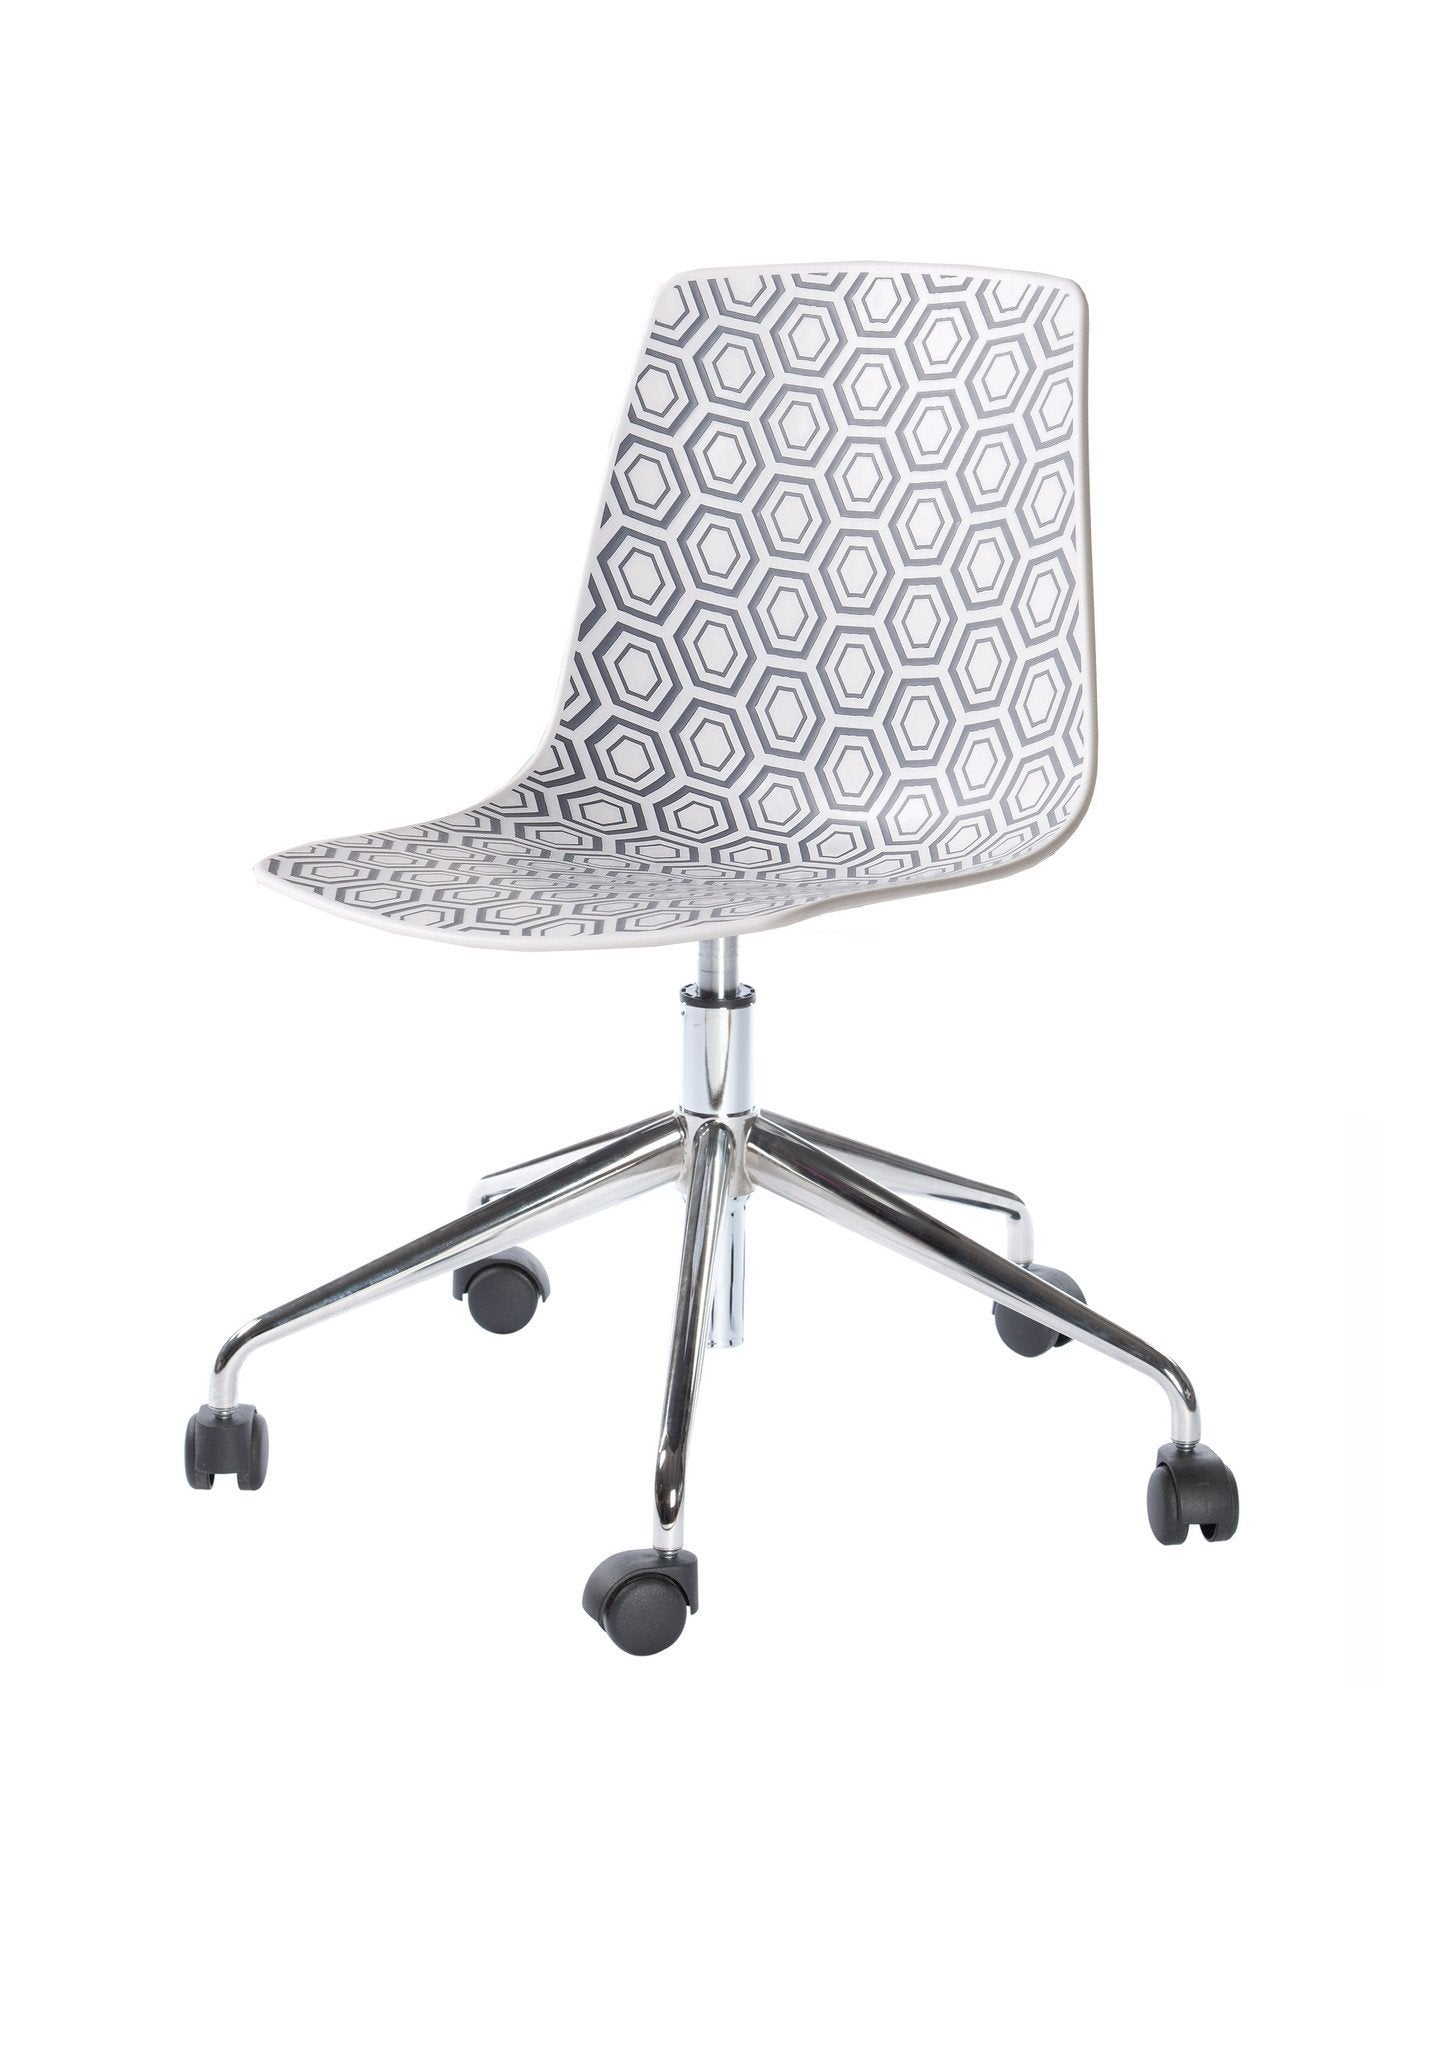 Alhambra Side Chair c/w Wheels-Gaber-Contract Furniture Store